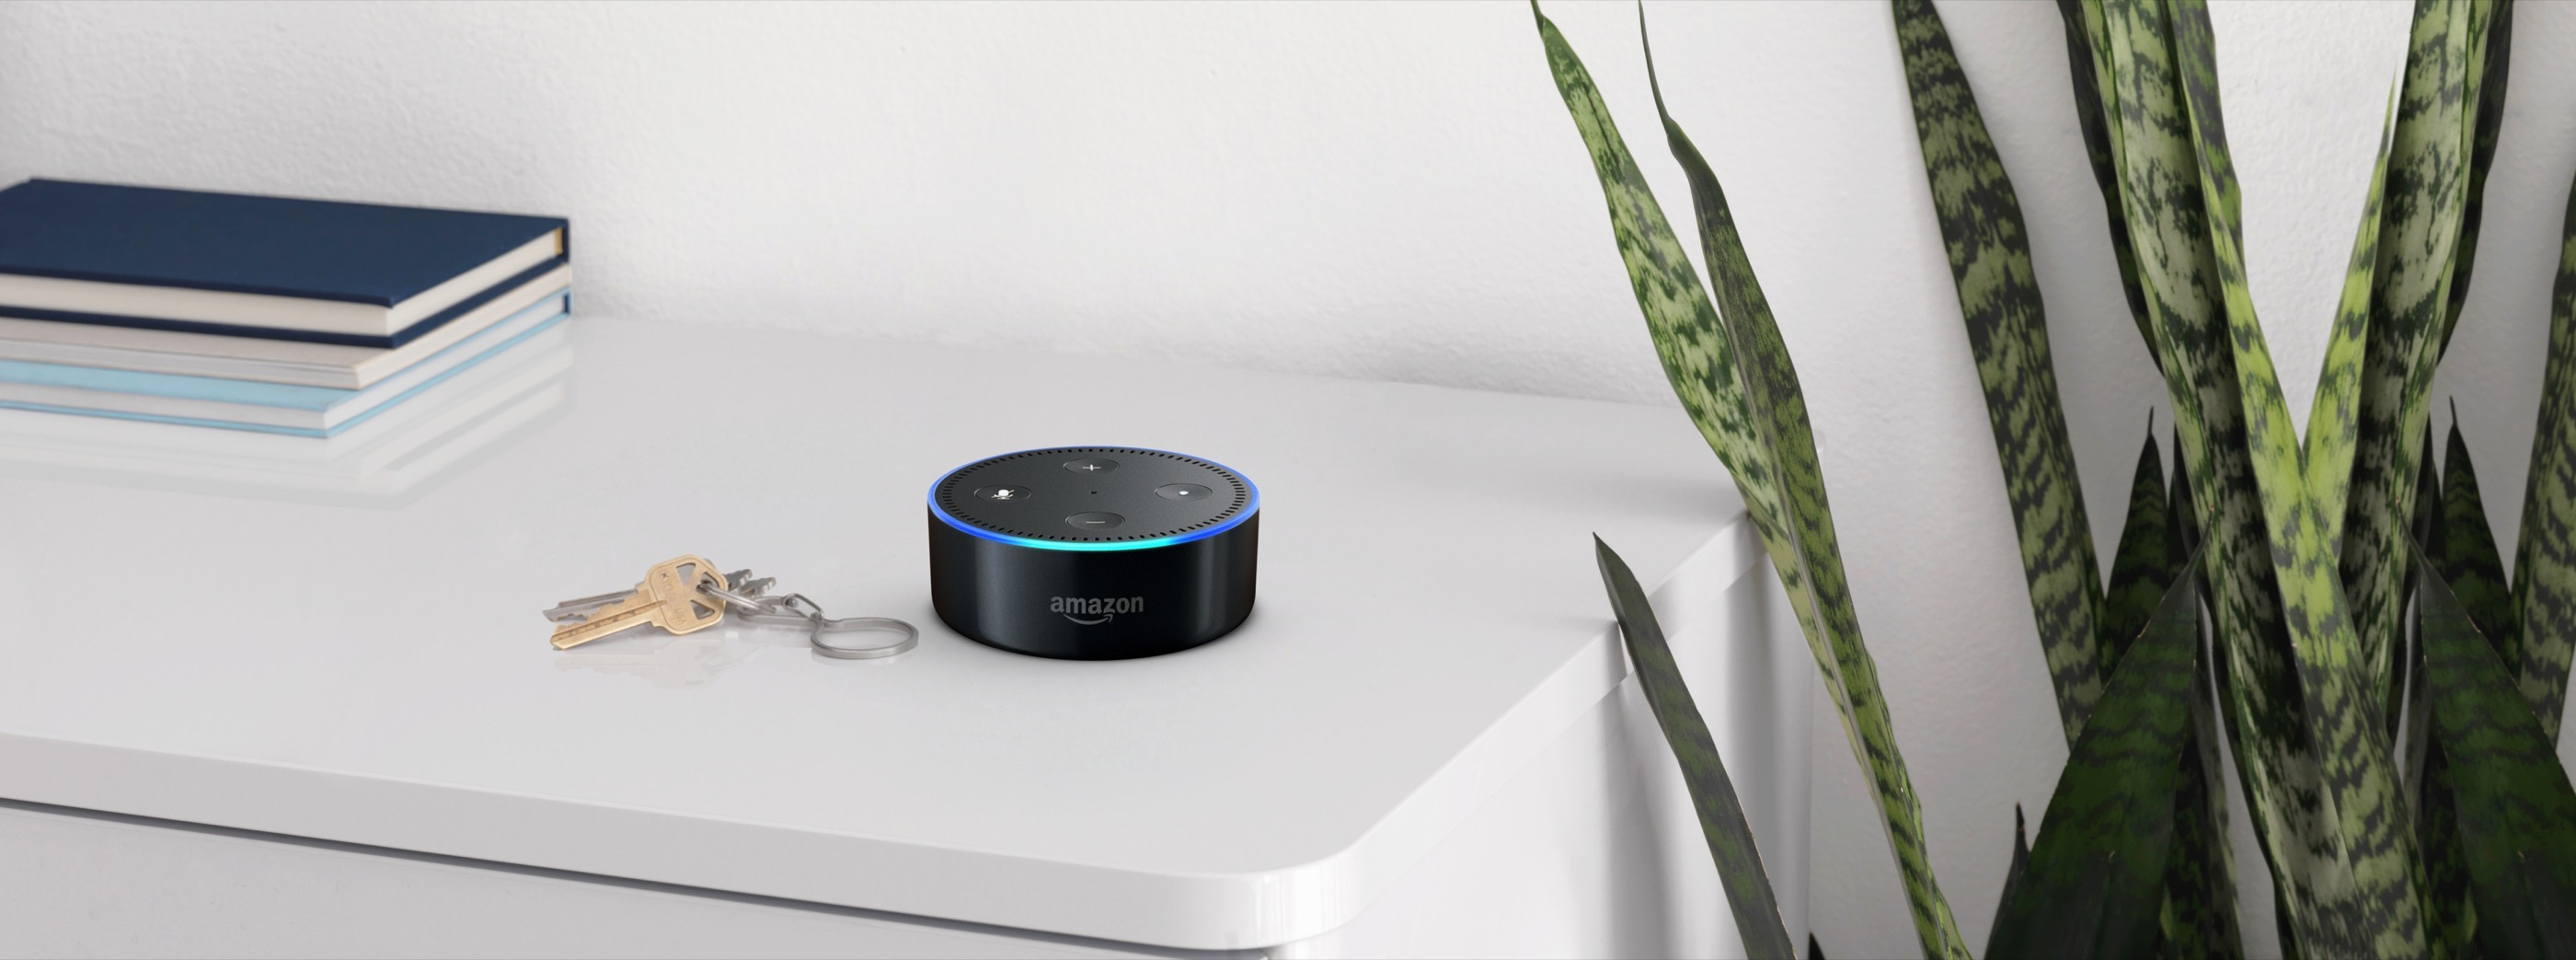 The Amazon Echo Dot smart voice assistant